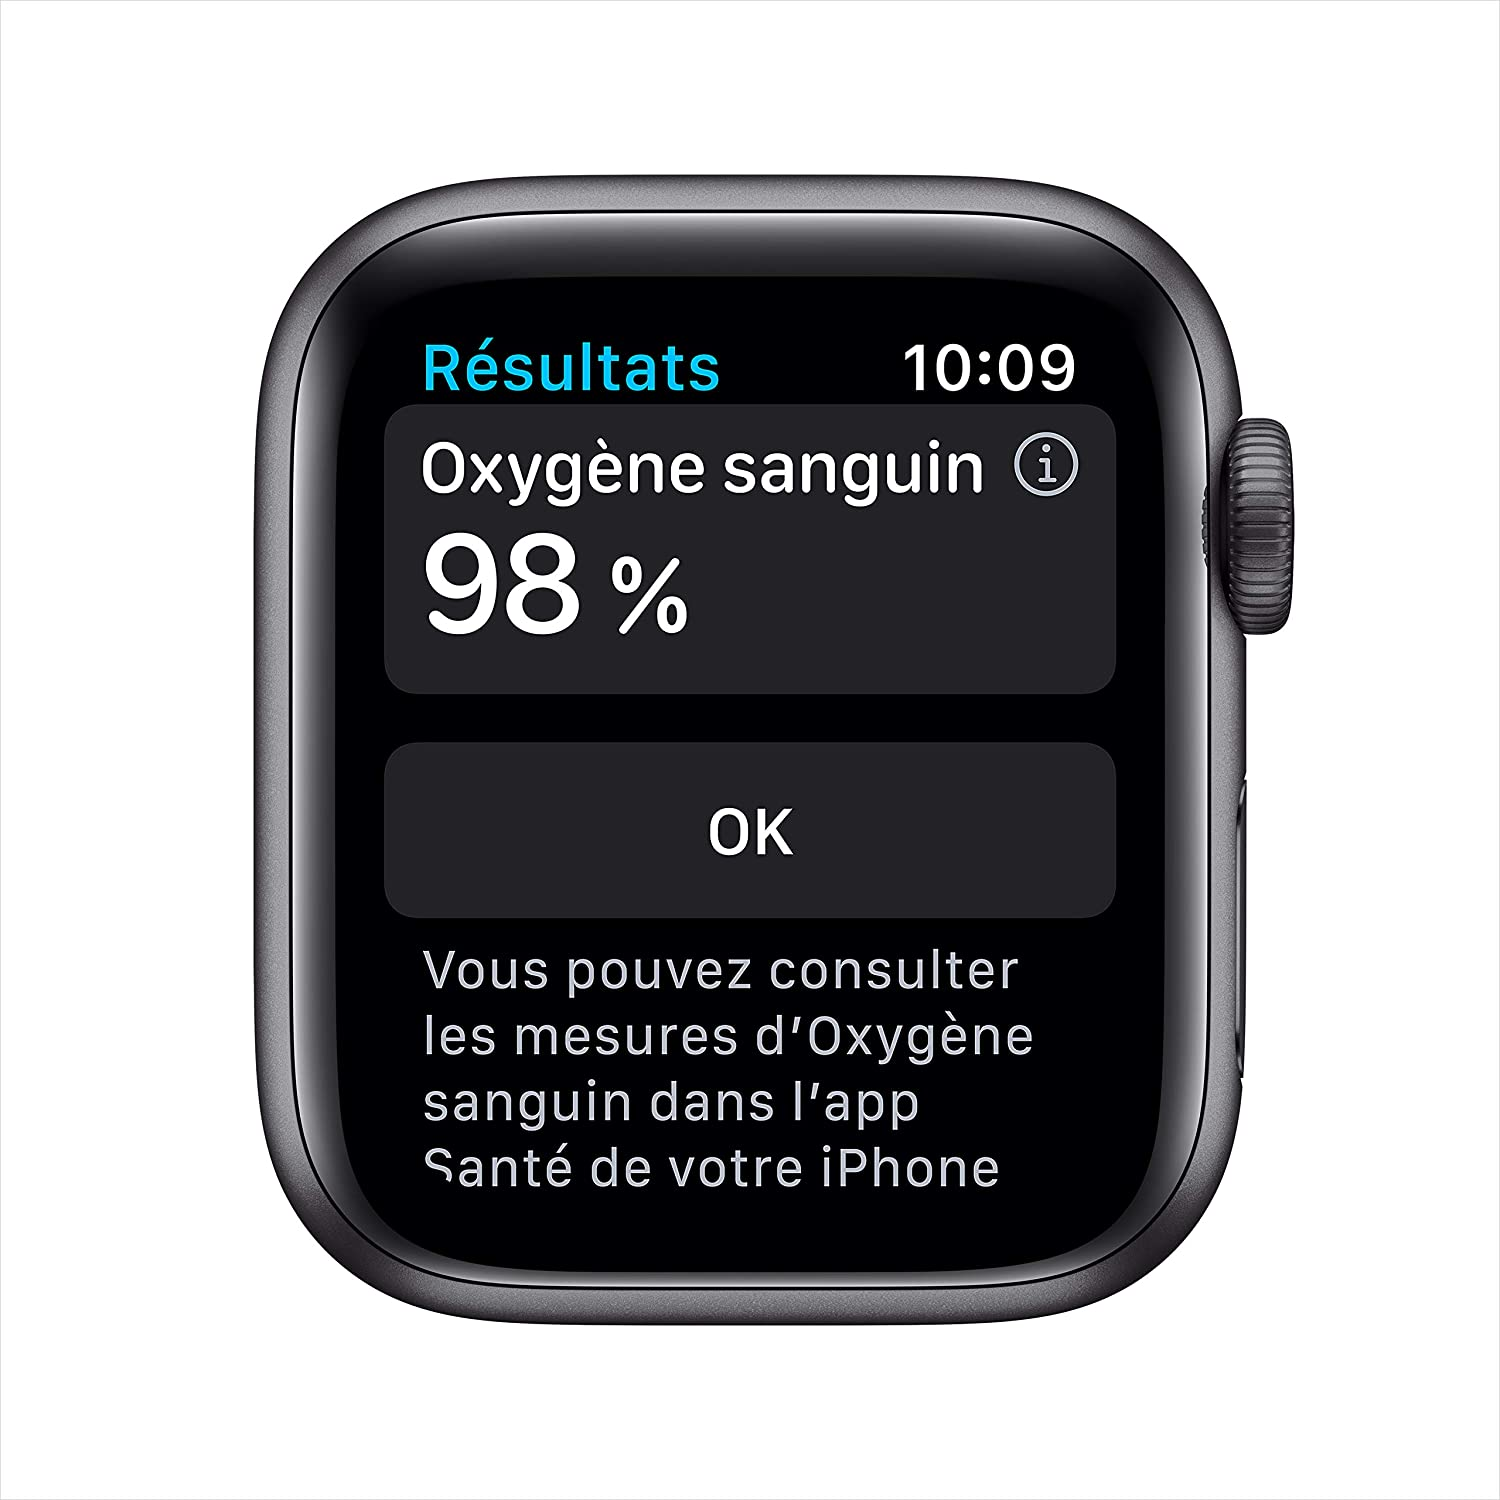 up-to-20-off-apple-watch-6seaw3-fathers-day-gift-2021-6-13-2021-6-13